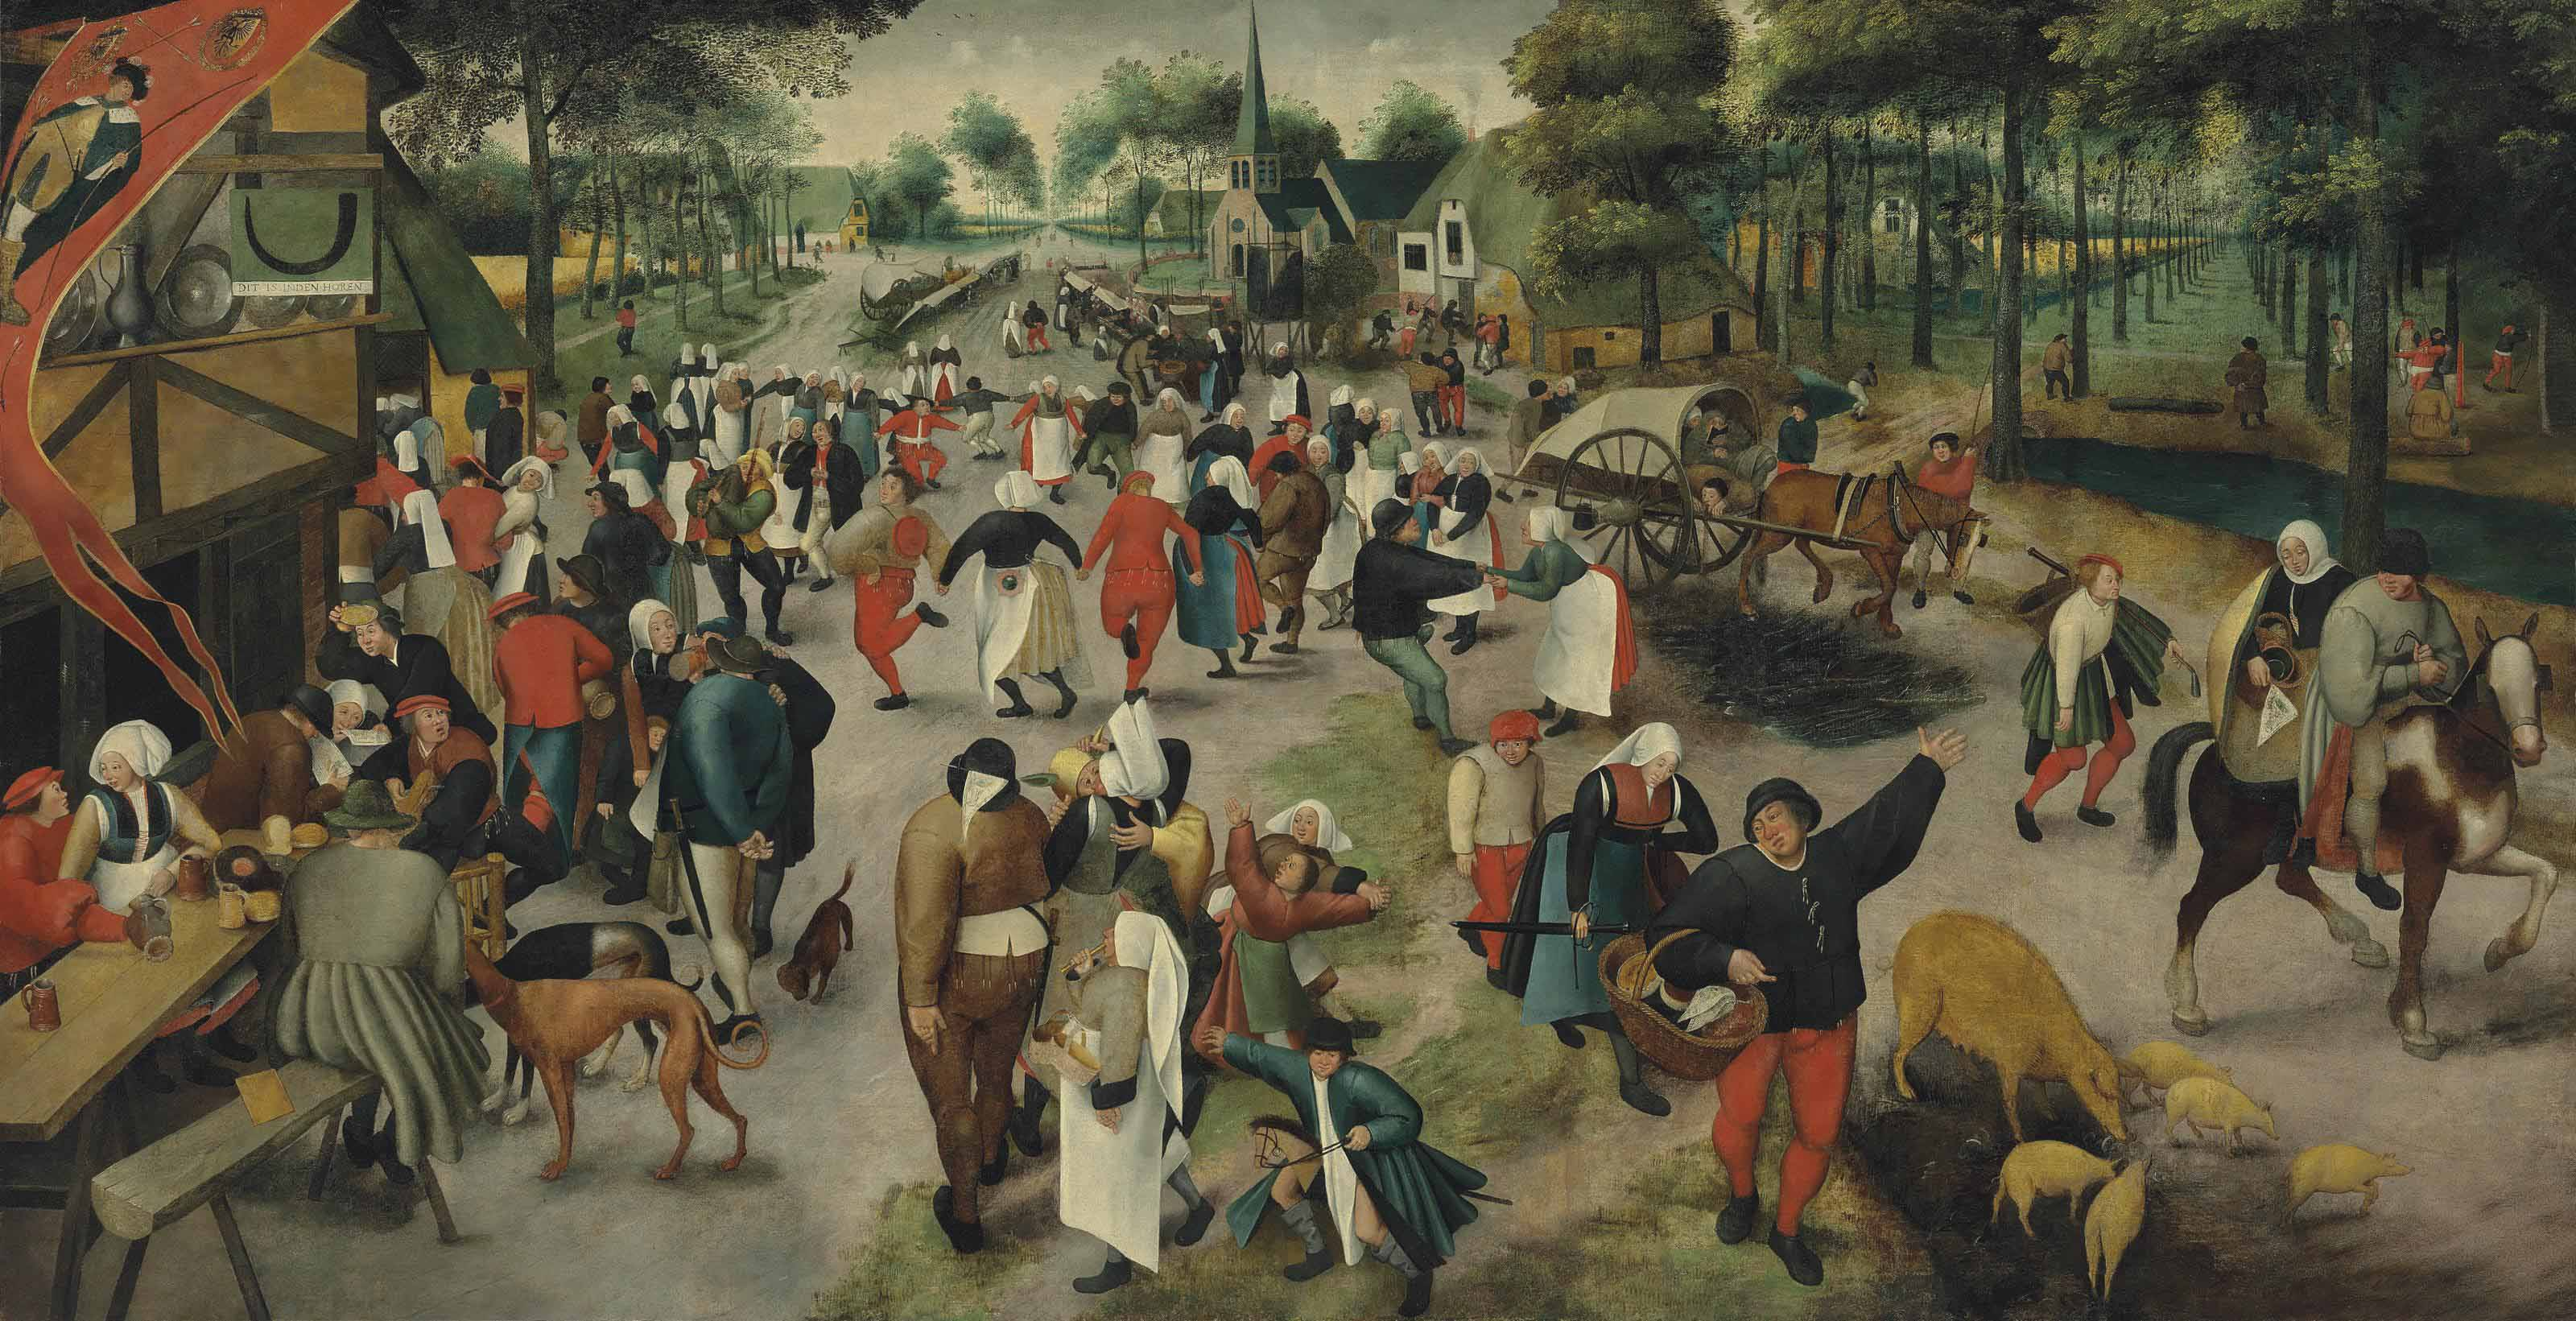 Saint George's Day: A village kermesse with figures dancing and merrymaking, others drinking before an inn at the sign of The Horn